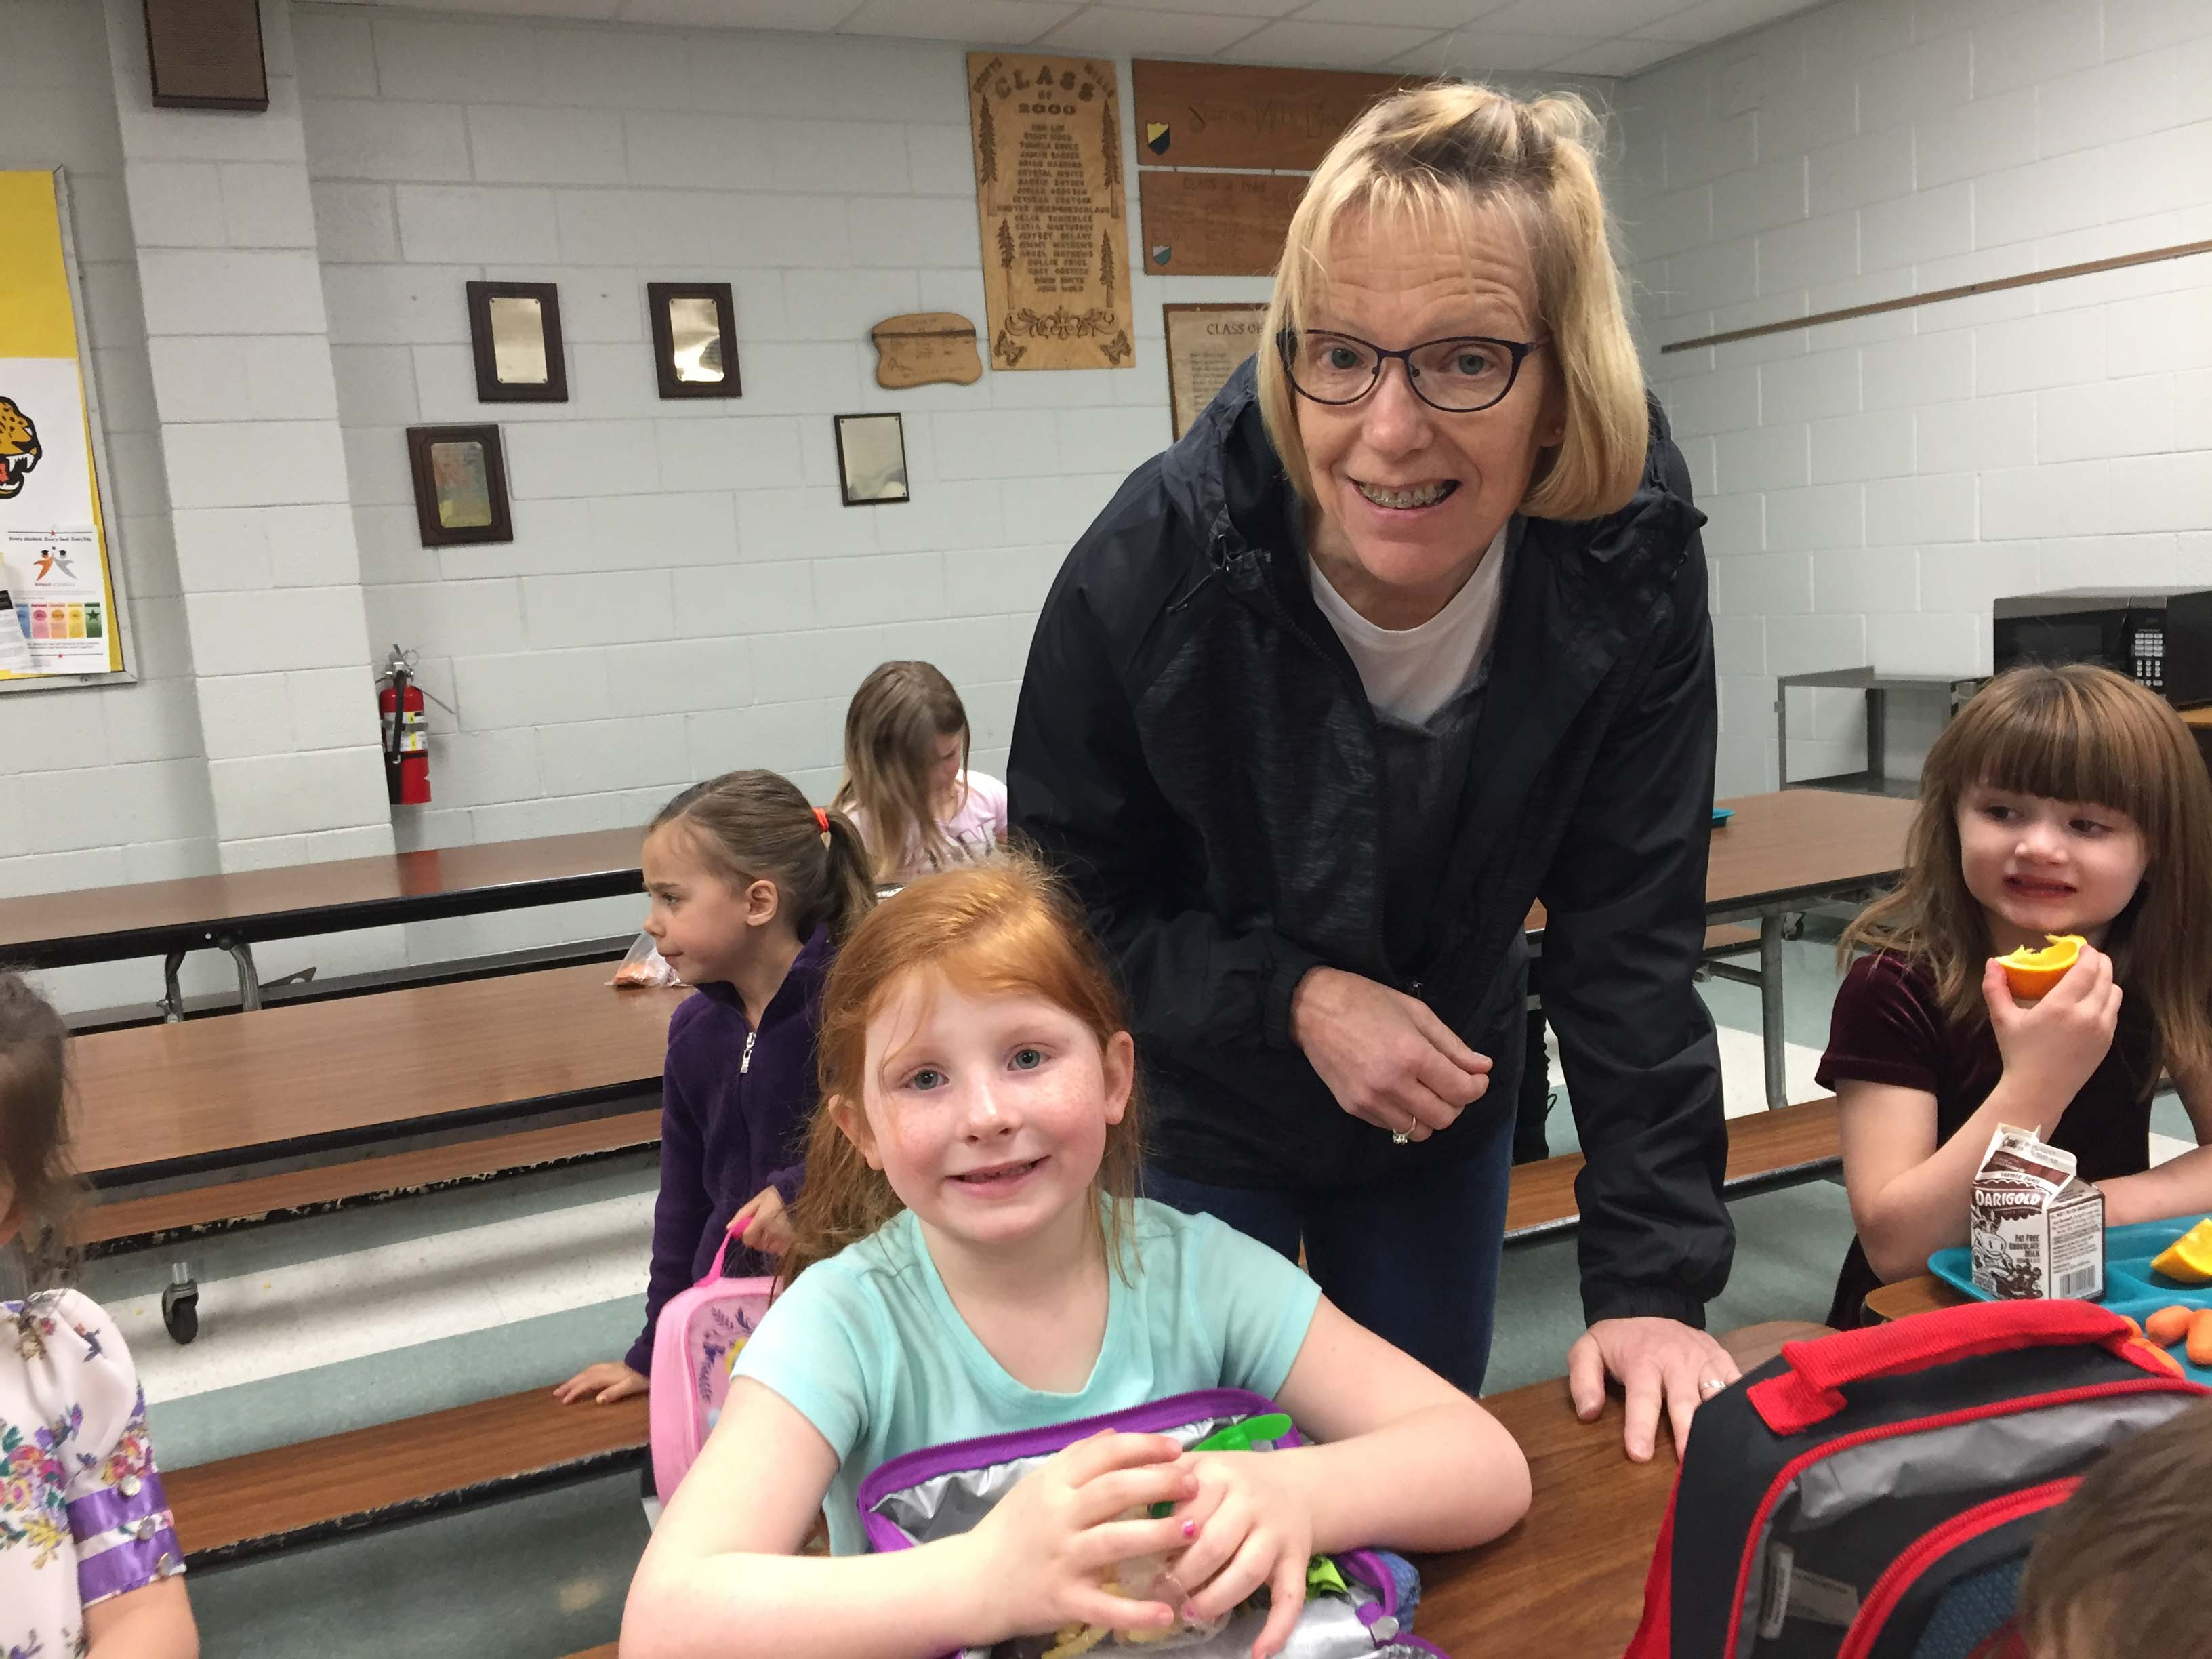 Scotts Mills kindergartener Evelyn Jorgenson at lunch with her teacher Karen Steers.